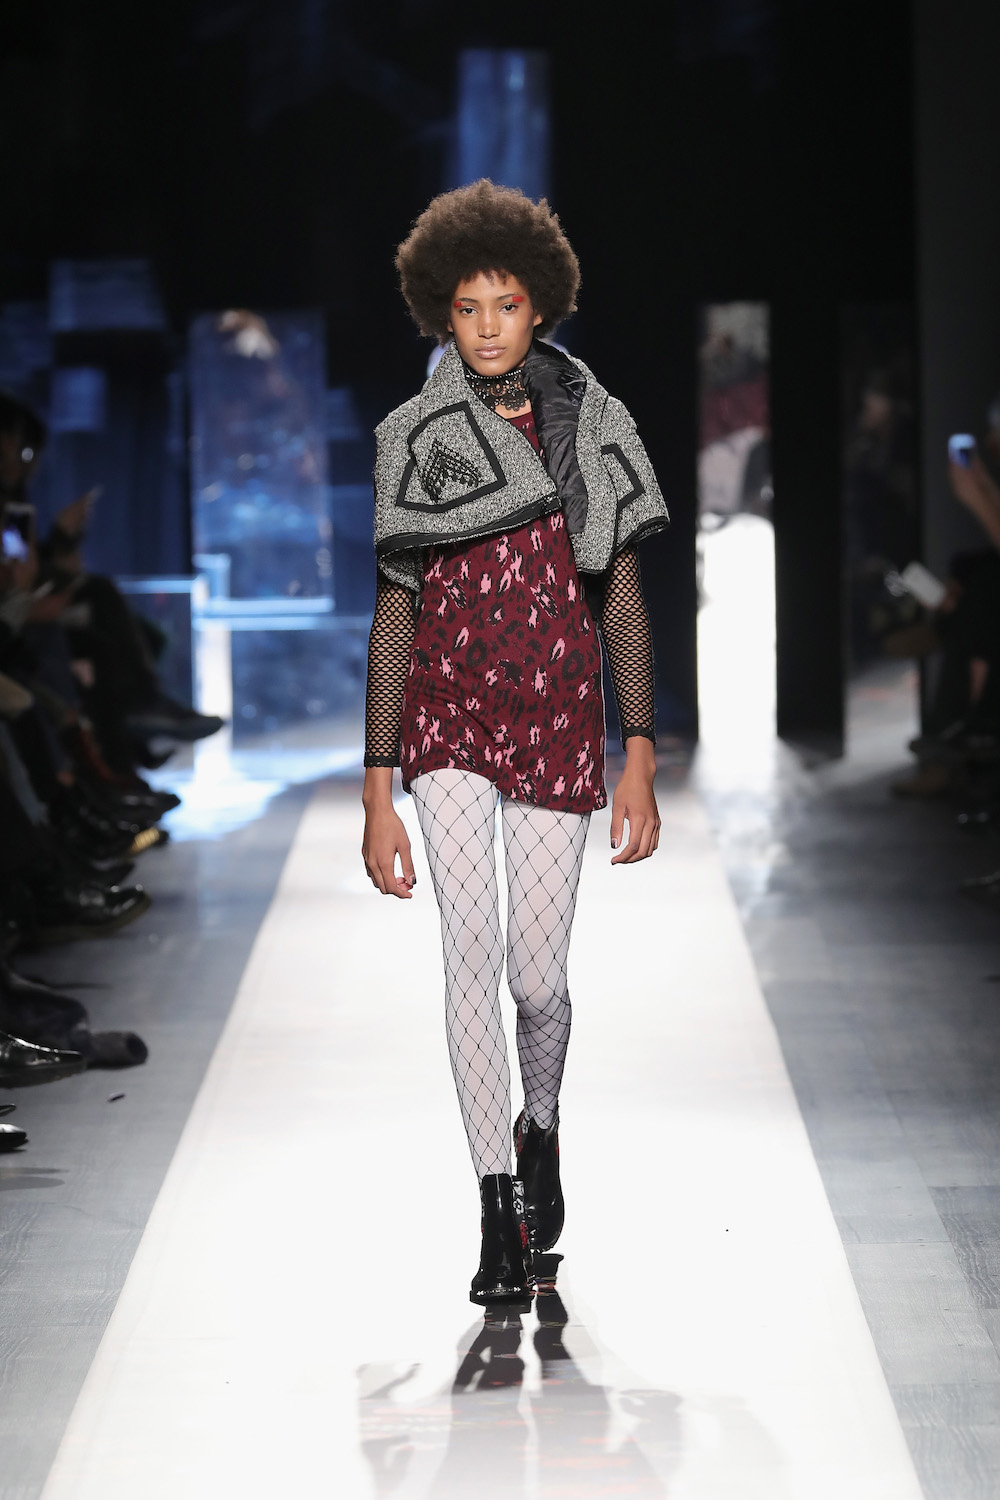 Desigual - Runway - February 2017 - New York Fashion Week: The Shows